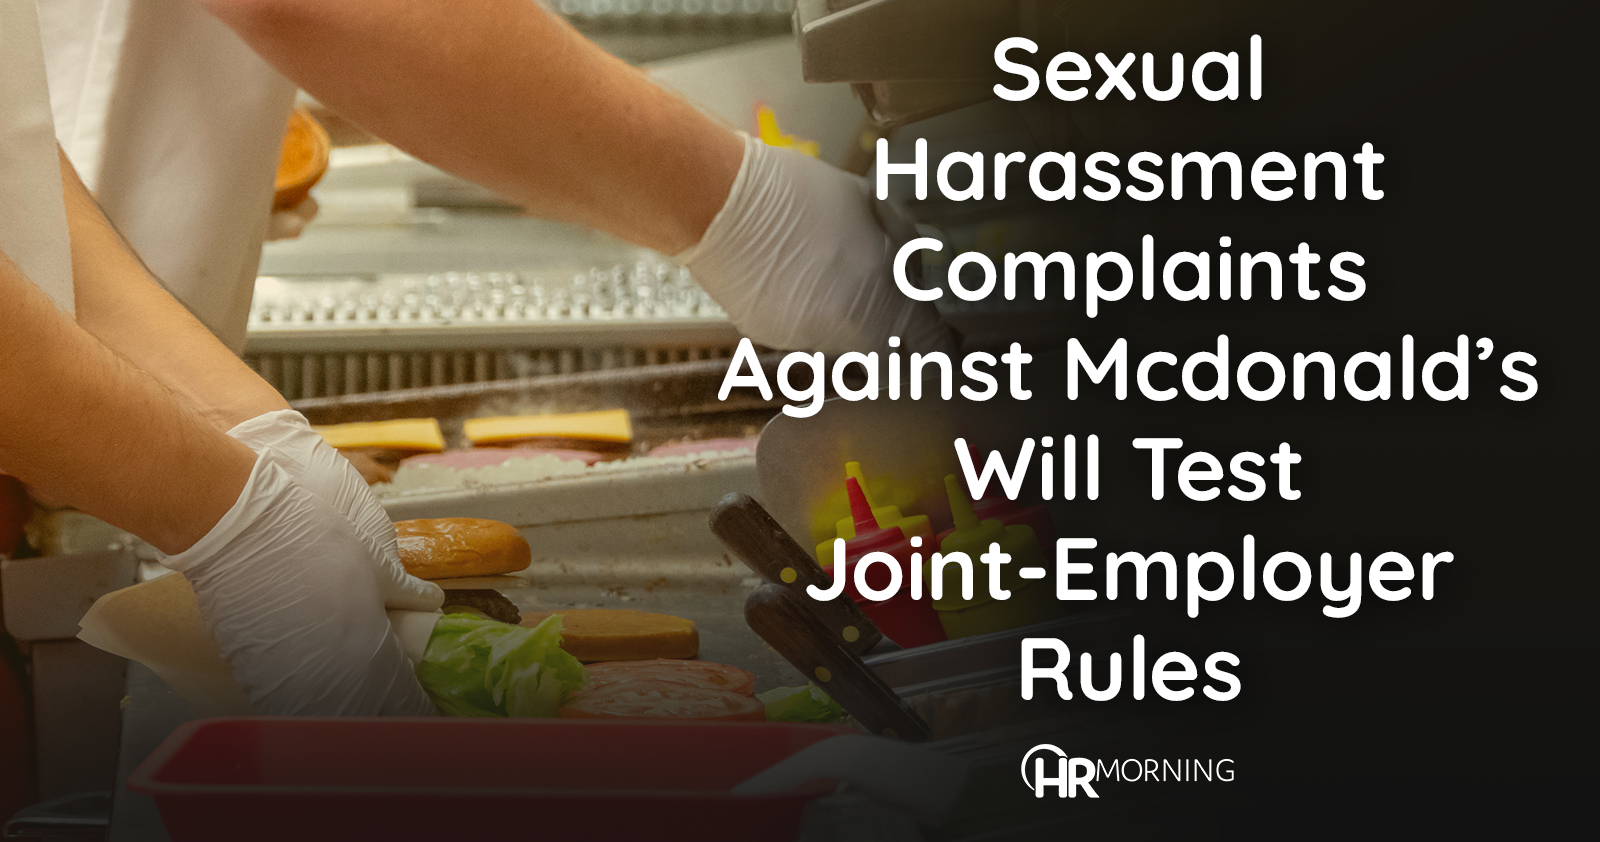 sexual harassment complaints against mcdonald's will test joint-employer rules